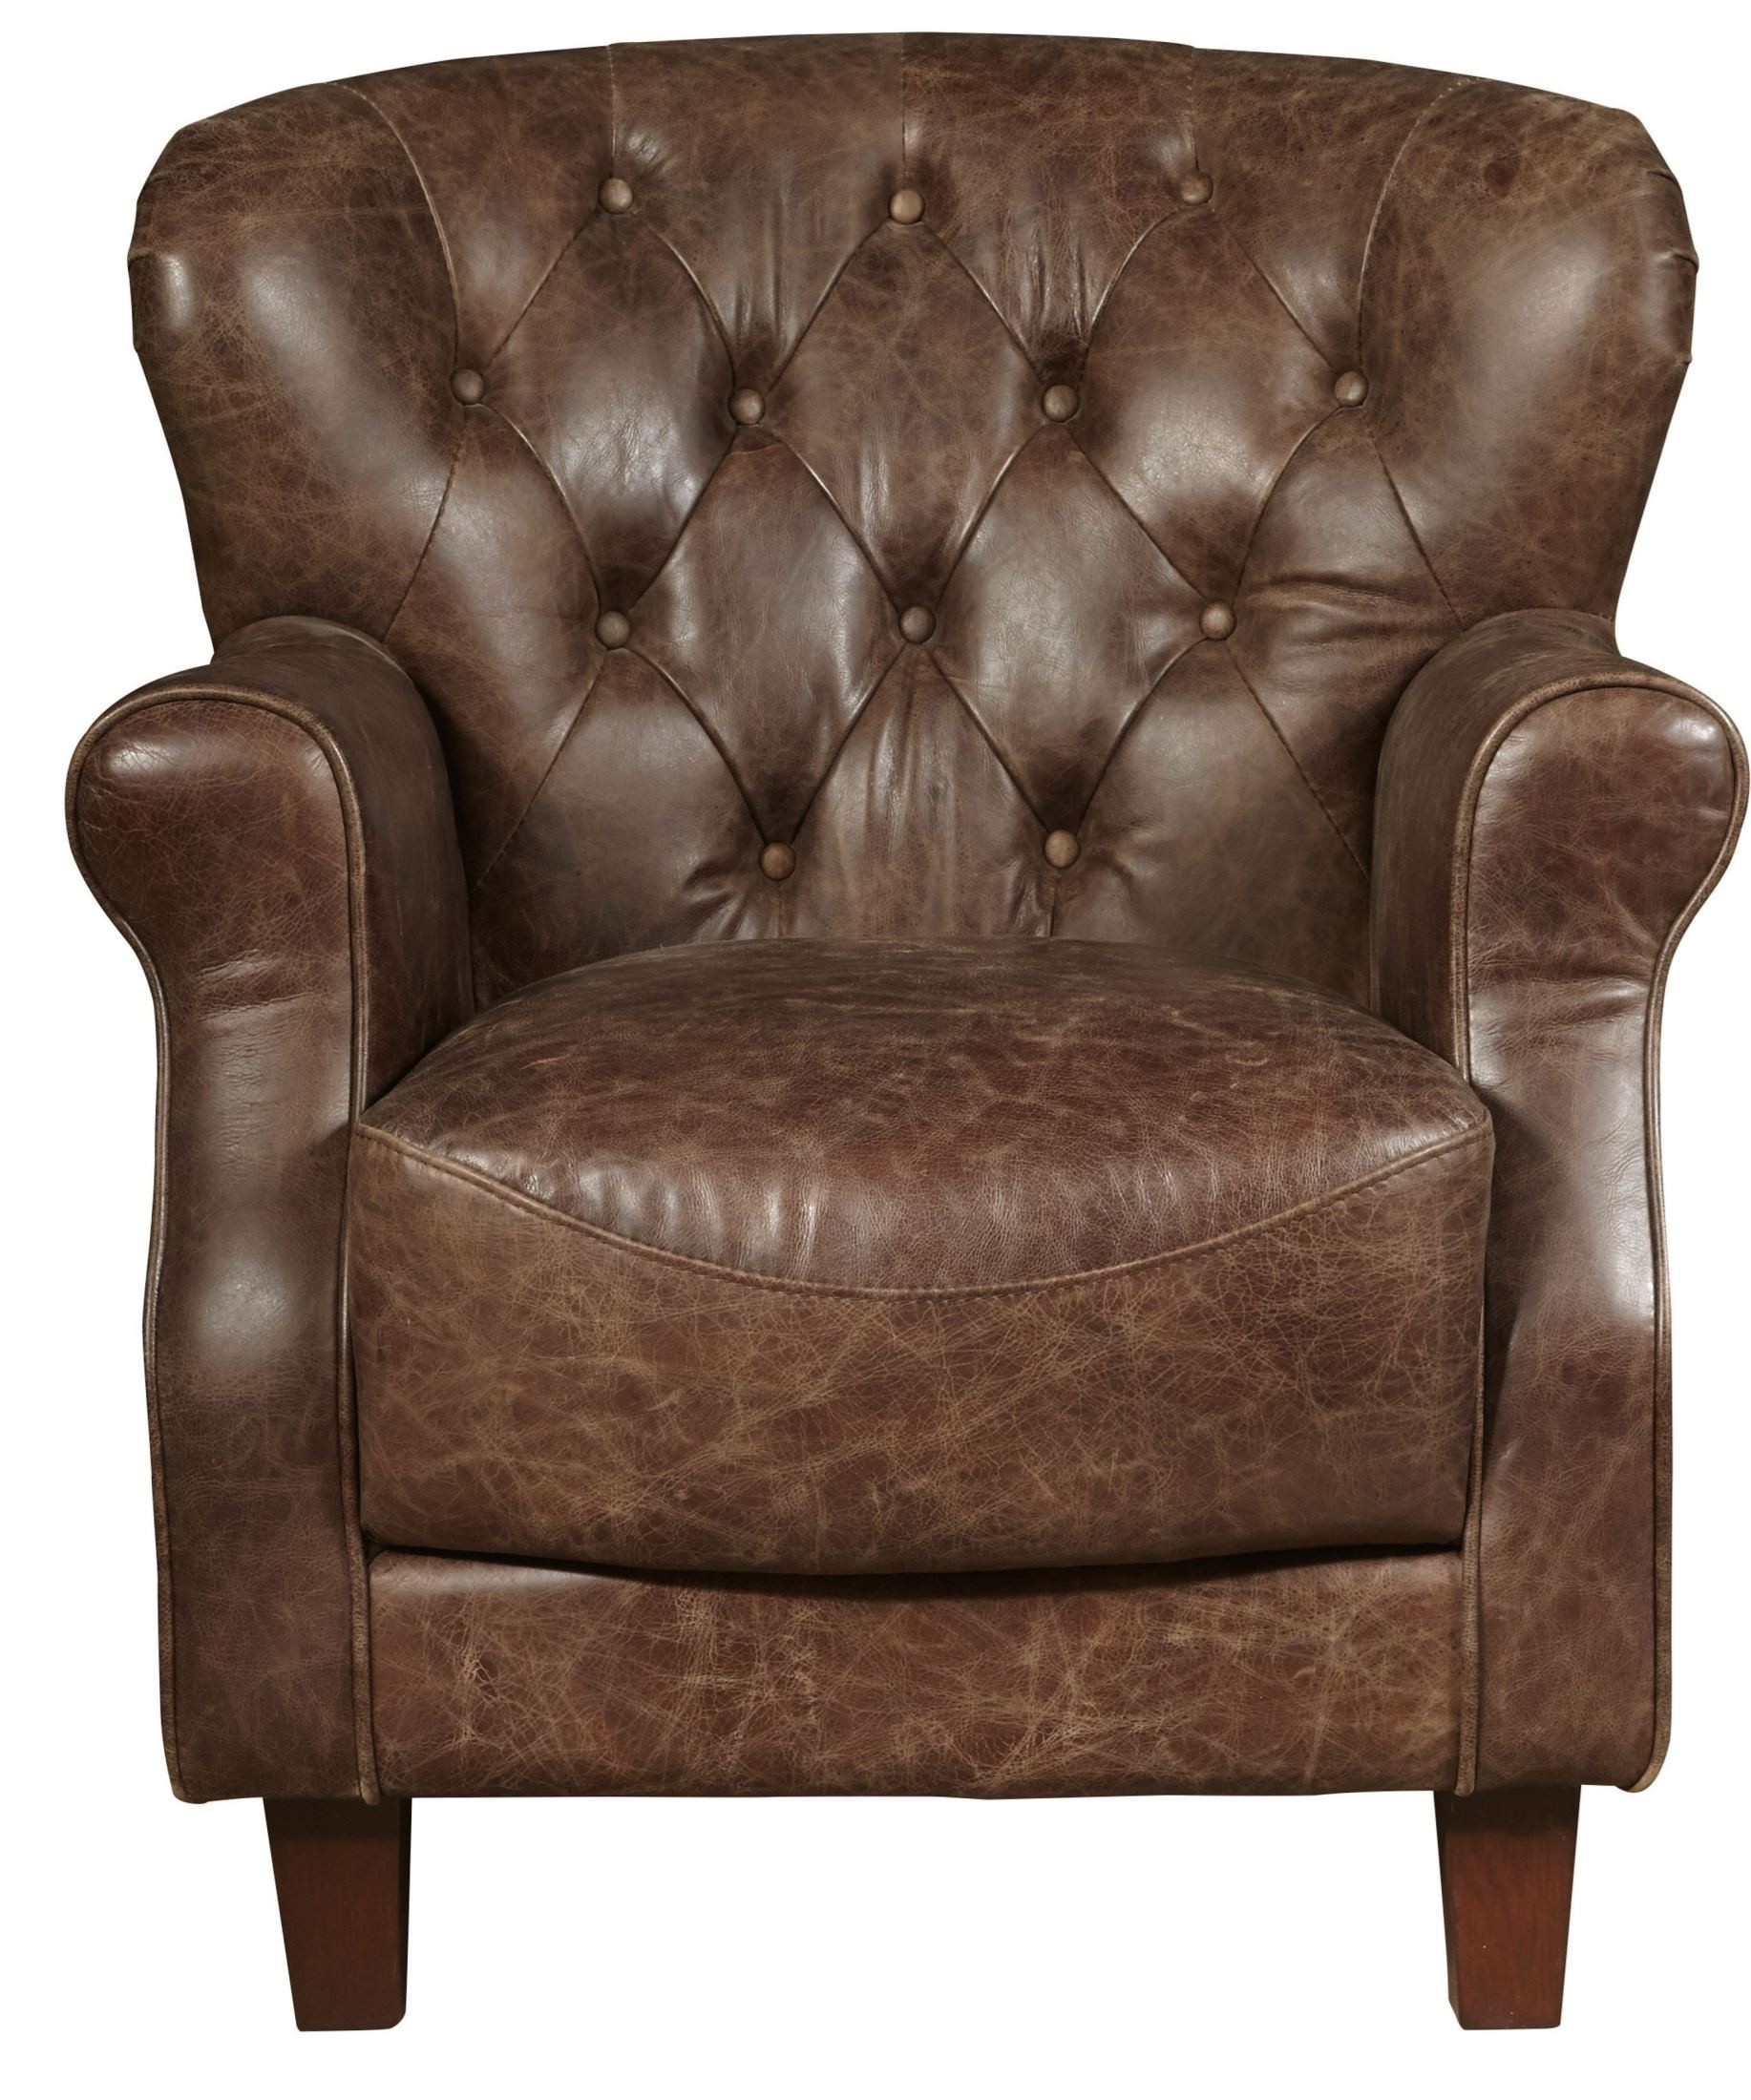 Grace Aviation Brown Leather Arm Chair from Pulaski